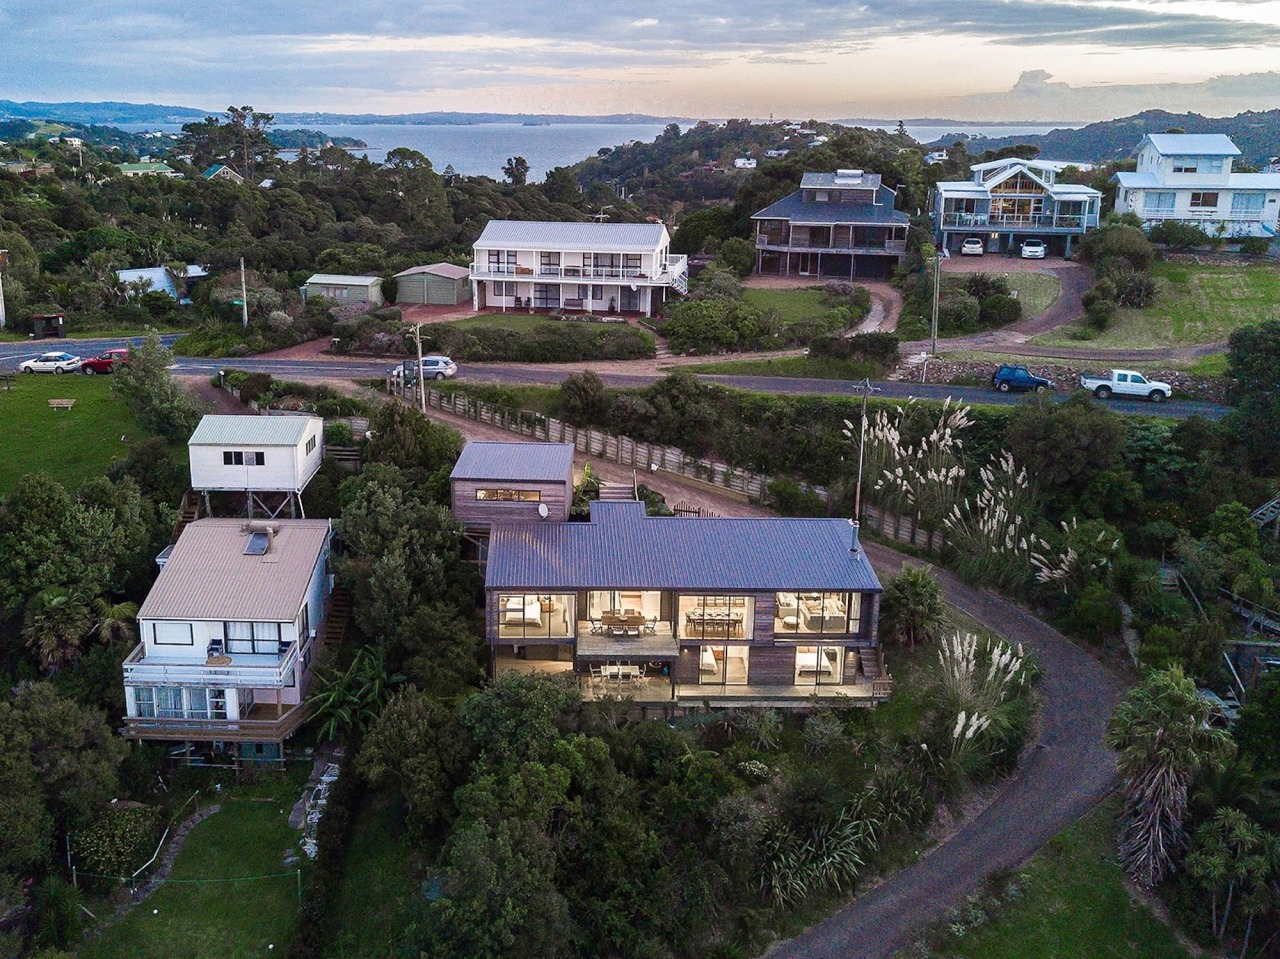 The home sits comfortably on its section aerial photography, bird's eye view, city, cottage, estate, home, house, neighbourhood, property, real estate, residential area, sky, suburb, tree, urban area, village, black